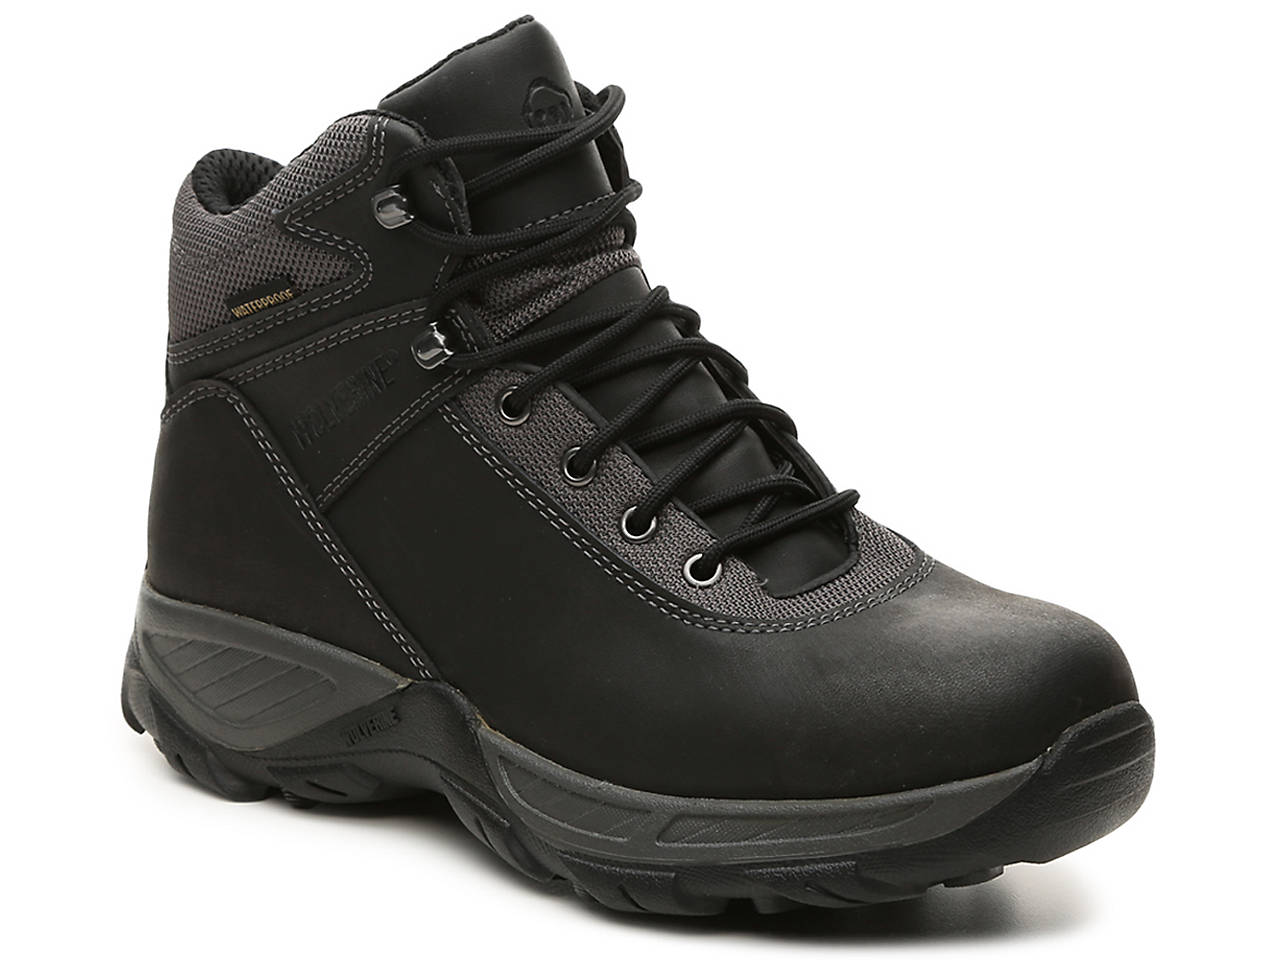 bbe56dd7a5c Wolverine Shoes & Boots | Work Shoes & Work Boots | DSW